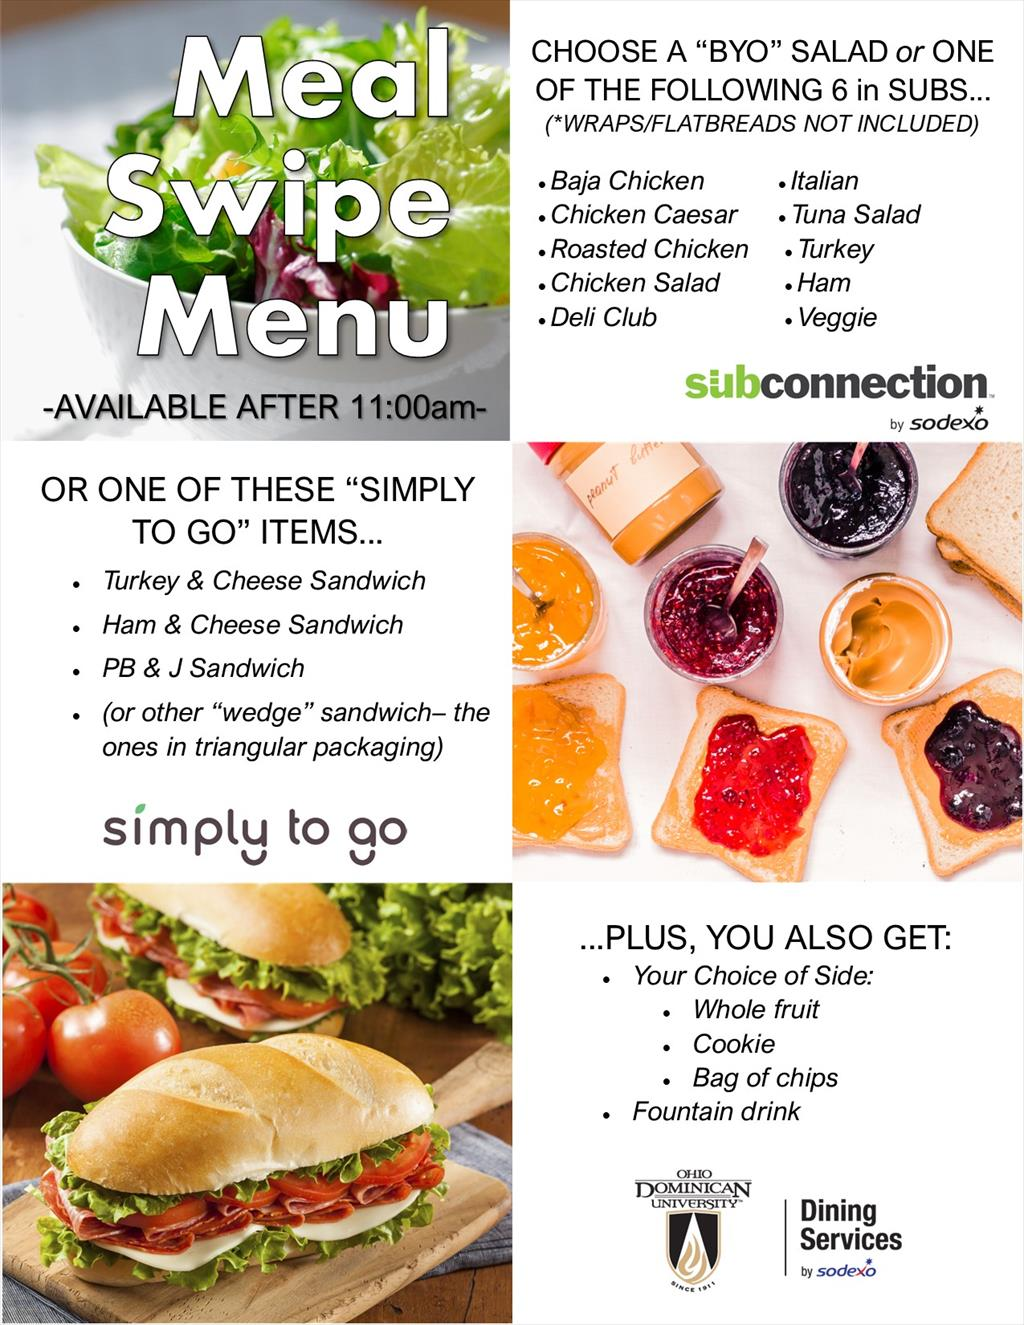 ODU Meal Swipe Menu